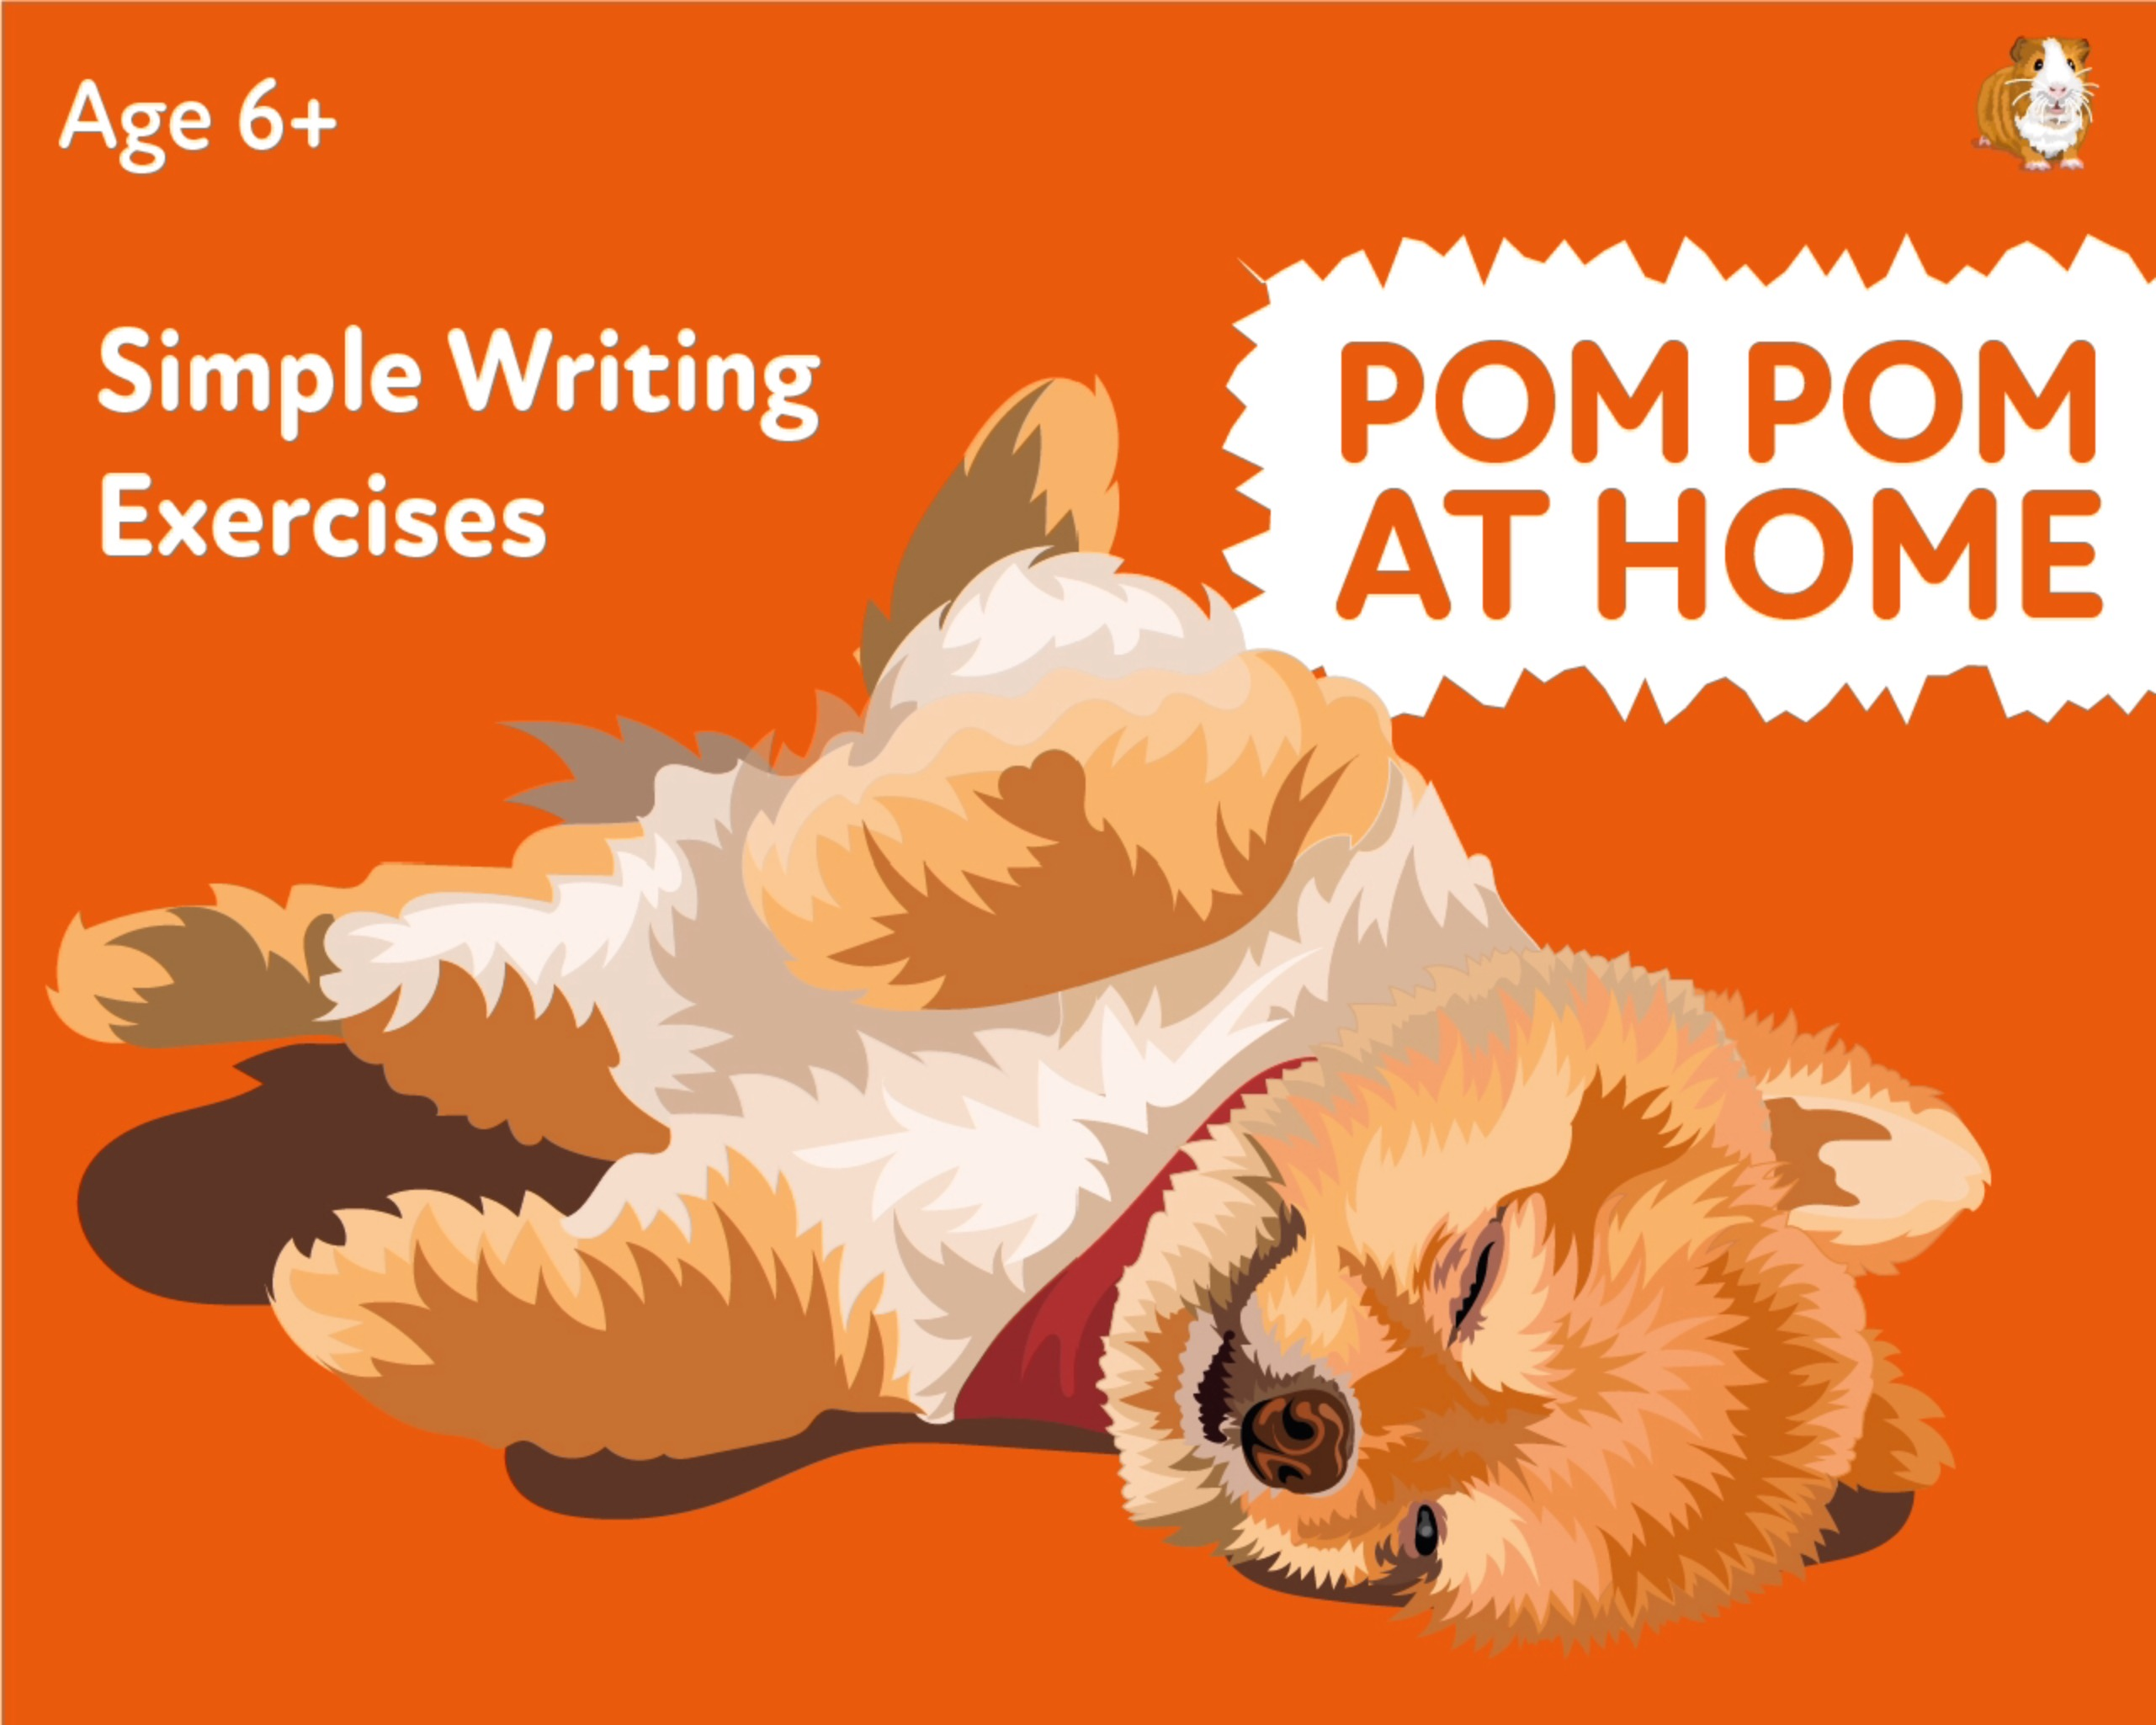 'Pom Pom At Home' A Fun Writing And Drawing Activity (6 years +)